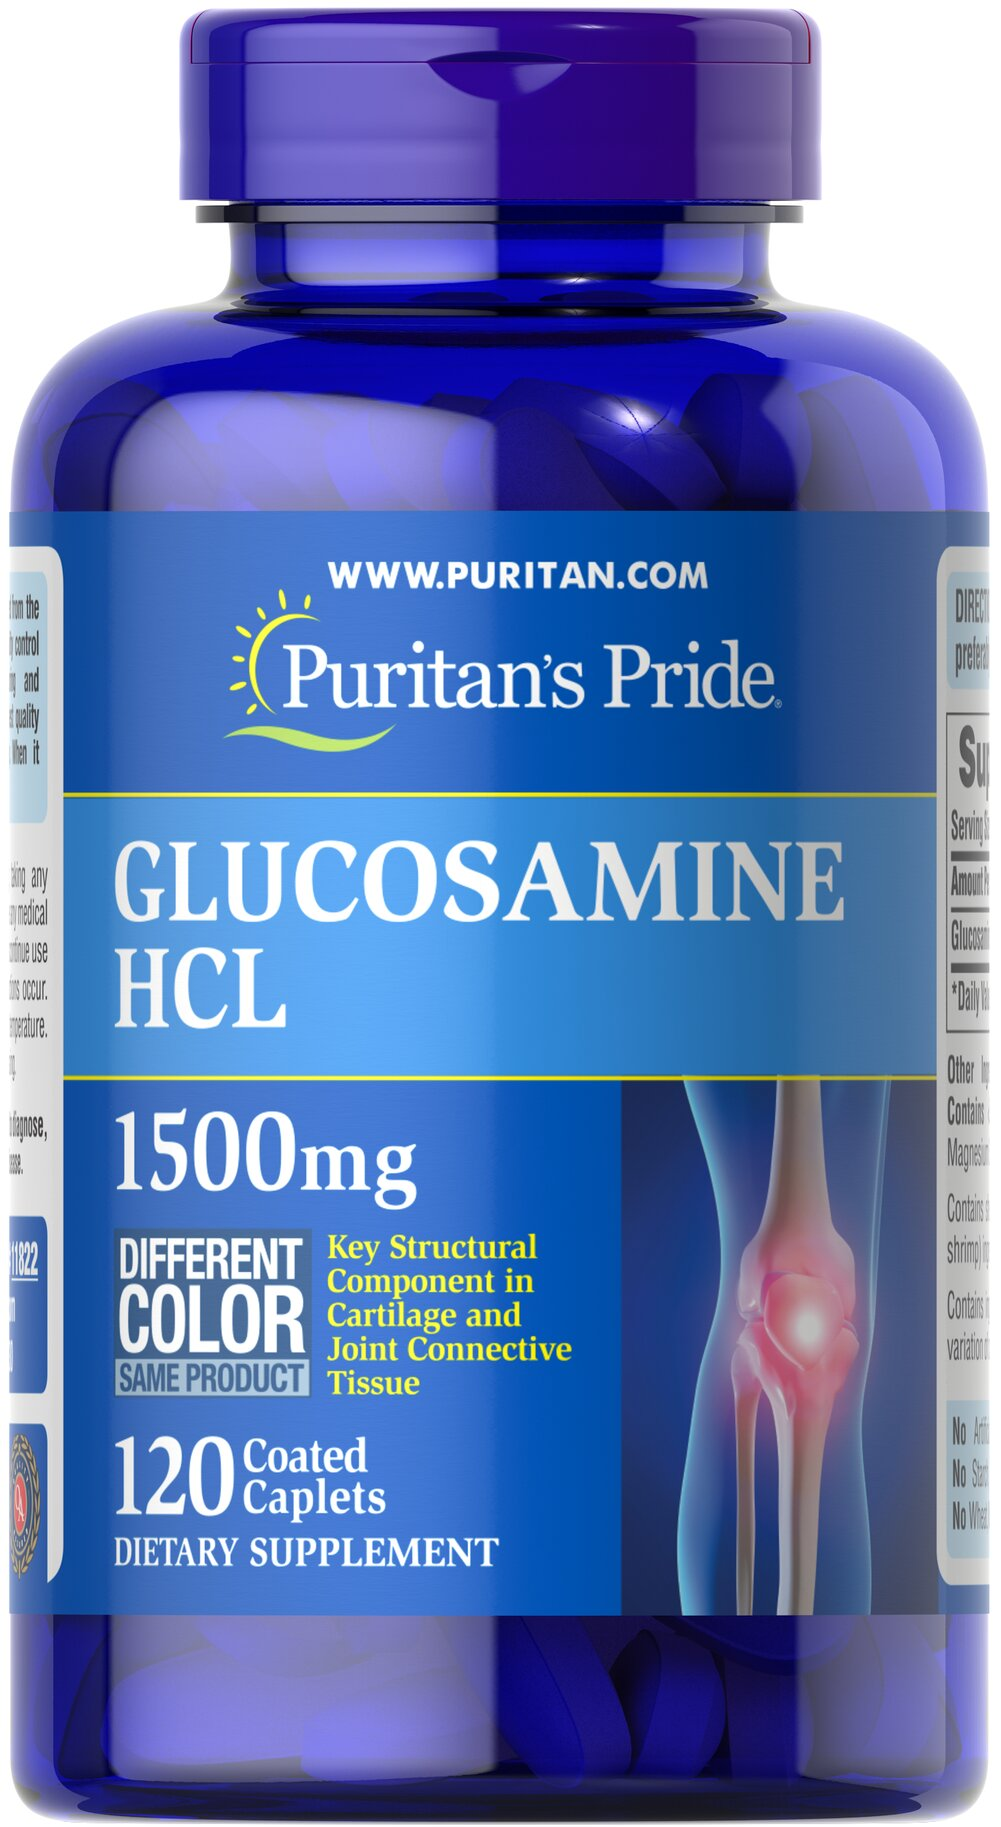 Glucosamine 1500 mg Thumbnail Alternate Bottle View